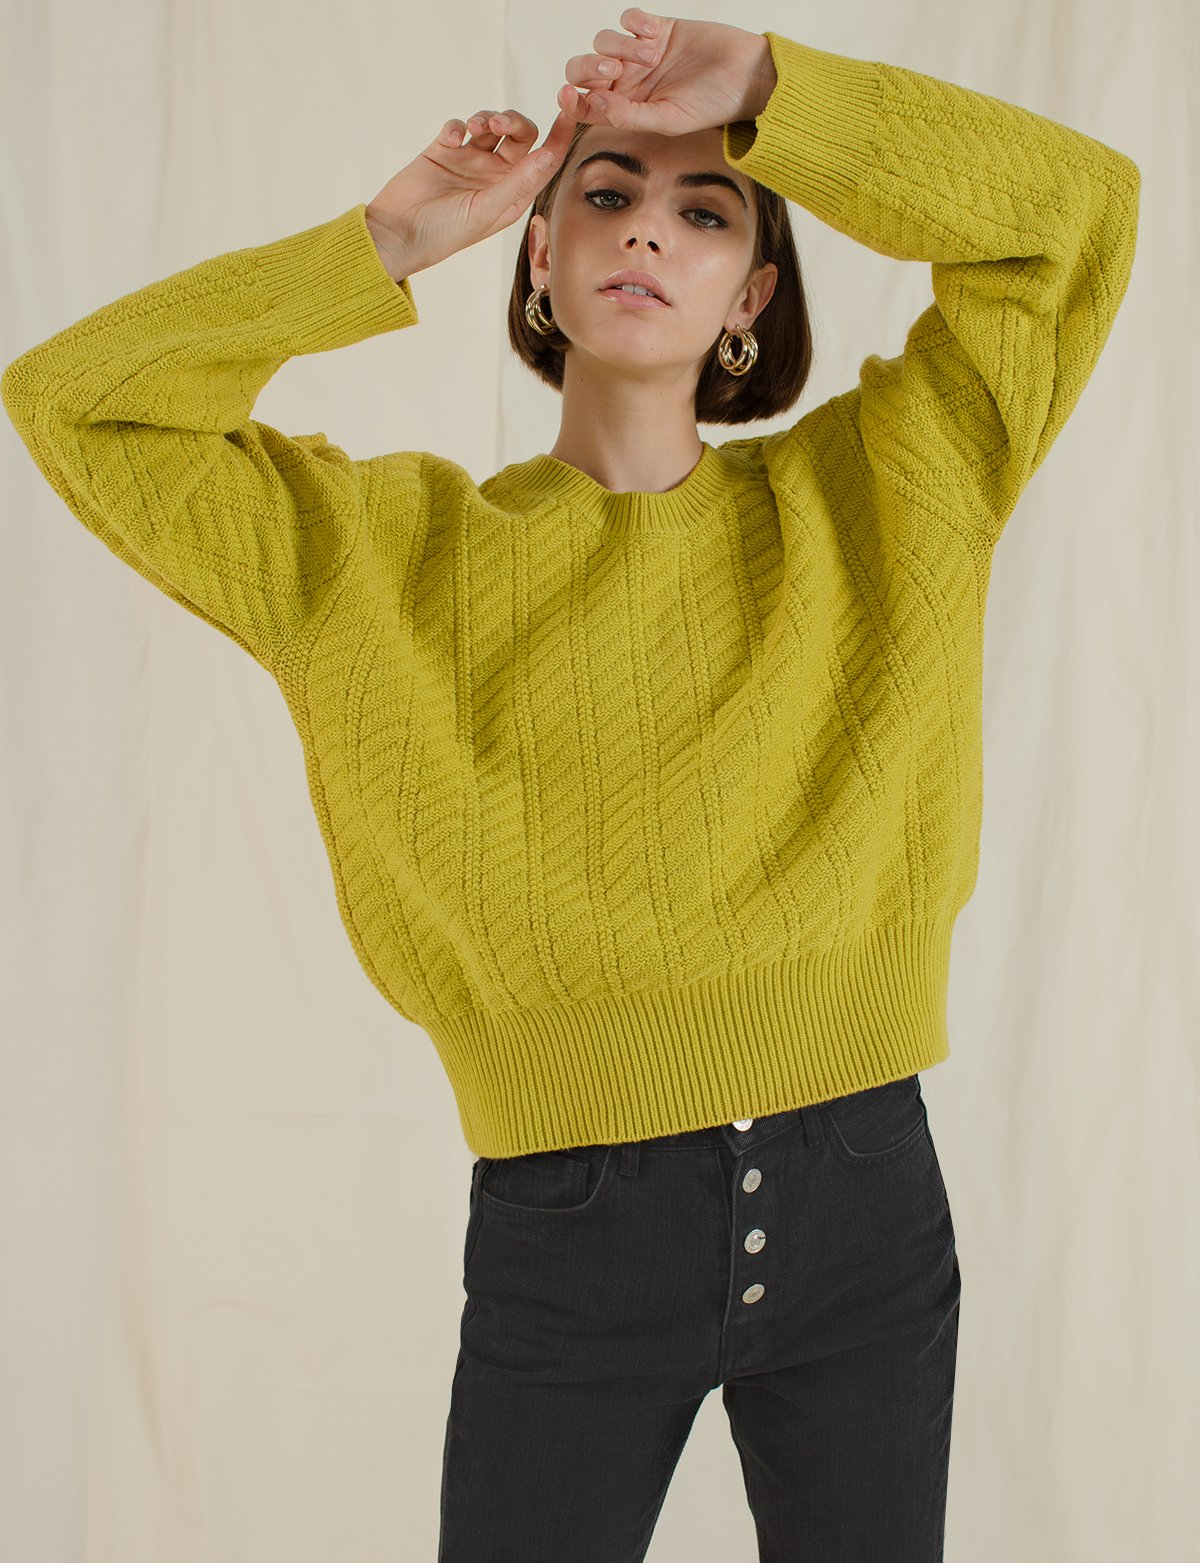 Chartreuse Cable Knit Sweater, $89